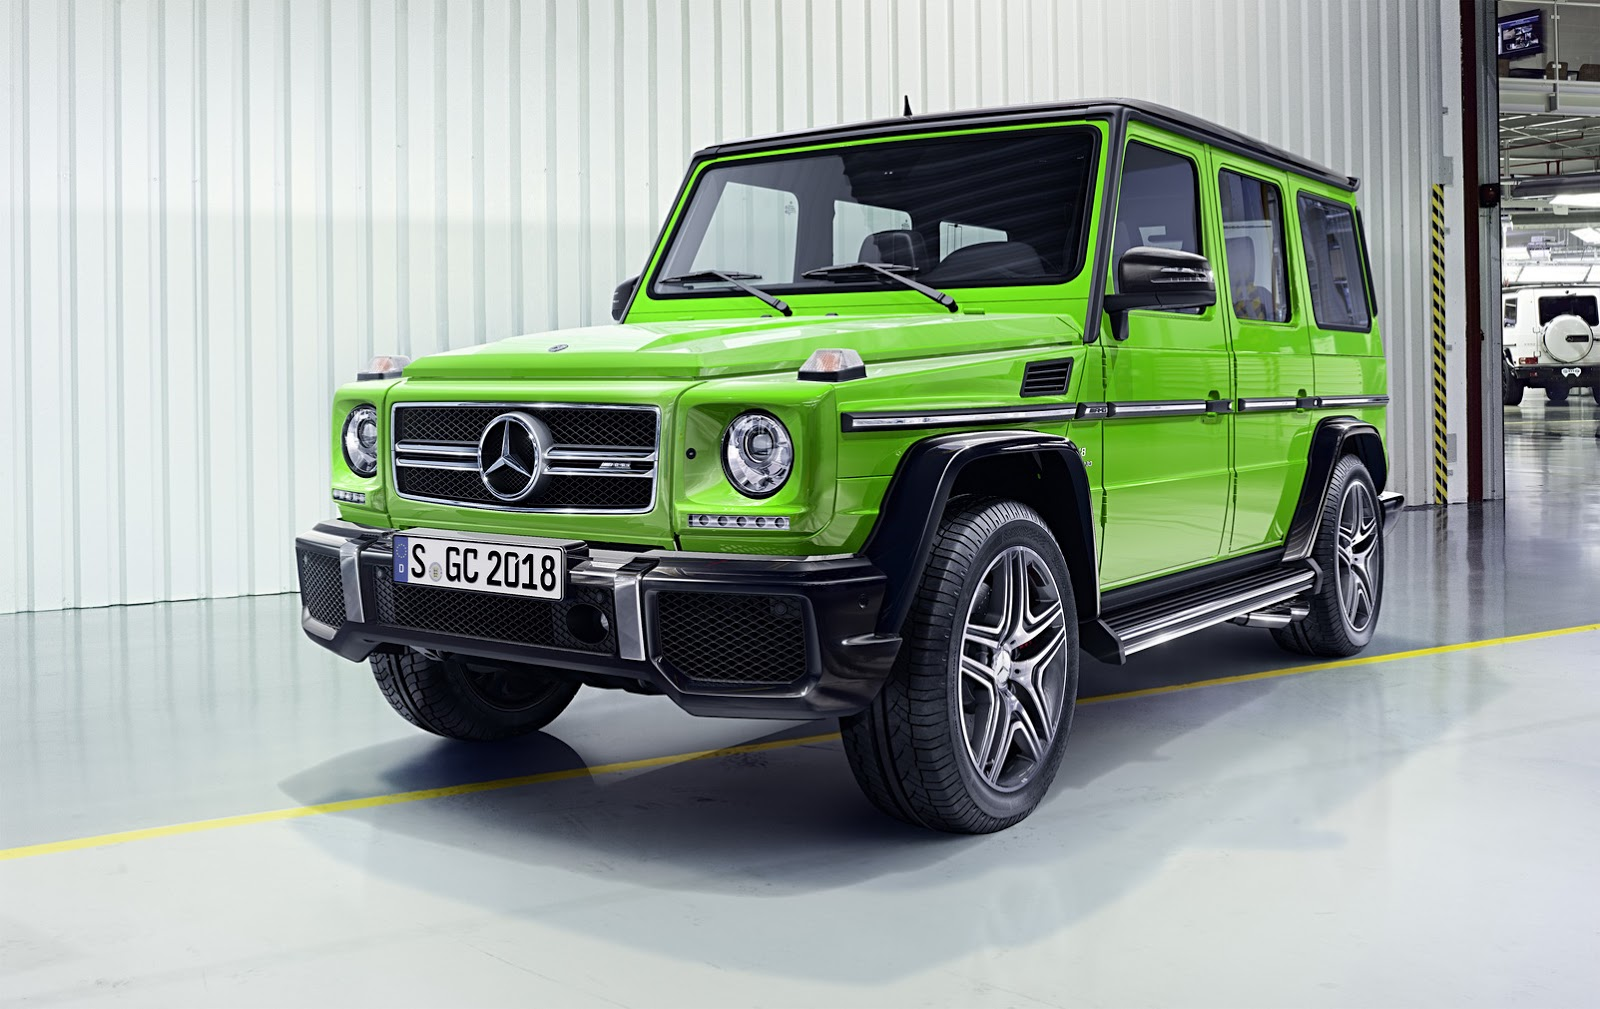 2016 mercedes benz g class gets new engines suspension and cosmetic upgrades carscoops. Black Bedroom Furniture Sets. Home Design Ideas